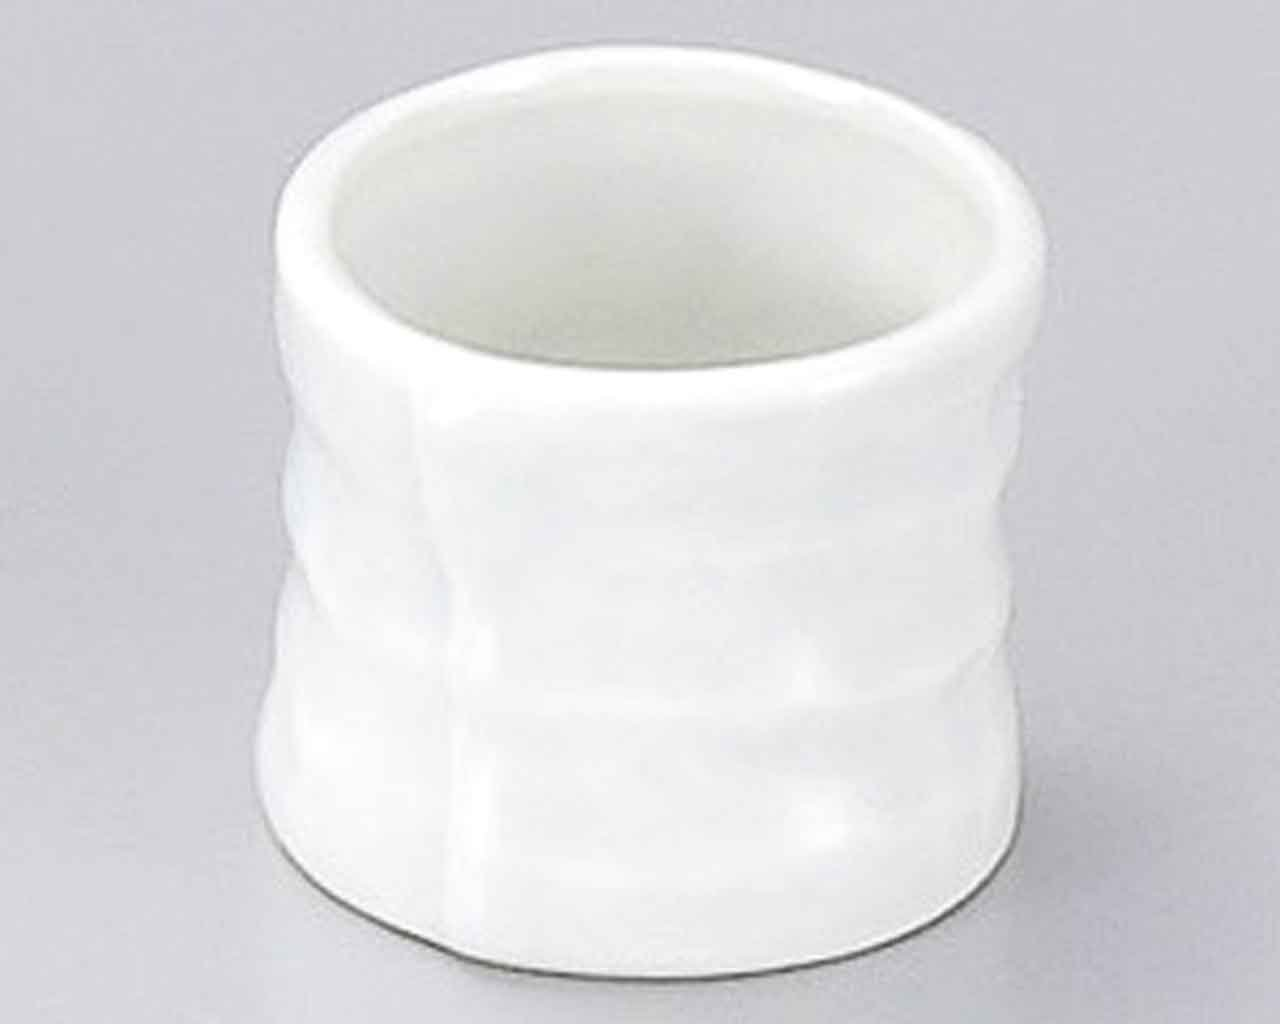 Seihakuji 1.8inch Set of 5 Toothpick holders White porcelain Made in Japan by Watou.asia